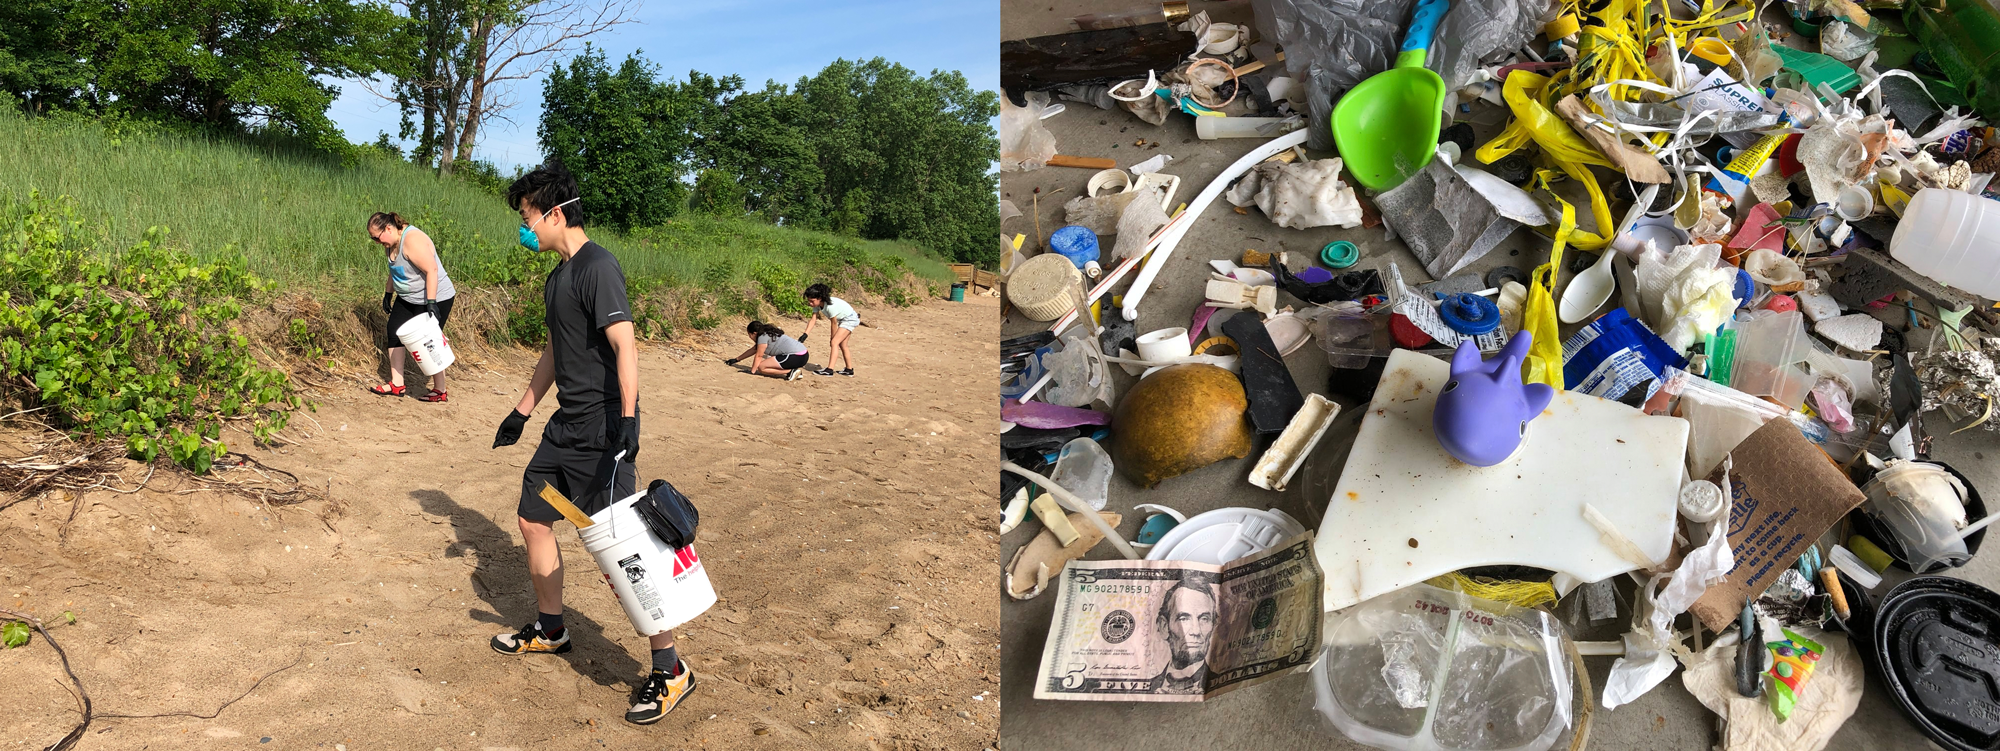 left: people walk along the beach with plastic buckets, cleaning up trash. right: pile of trash collected, including toys, cigarette butts, plastic wrappers, a 5-dollar bill, and more.